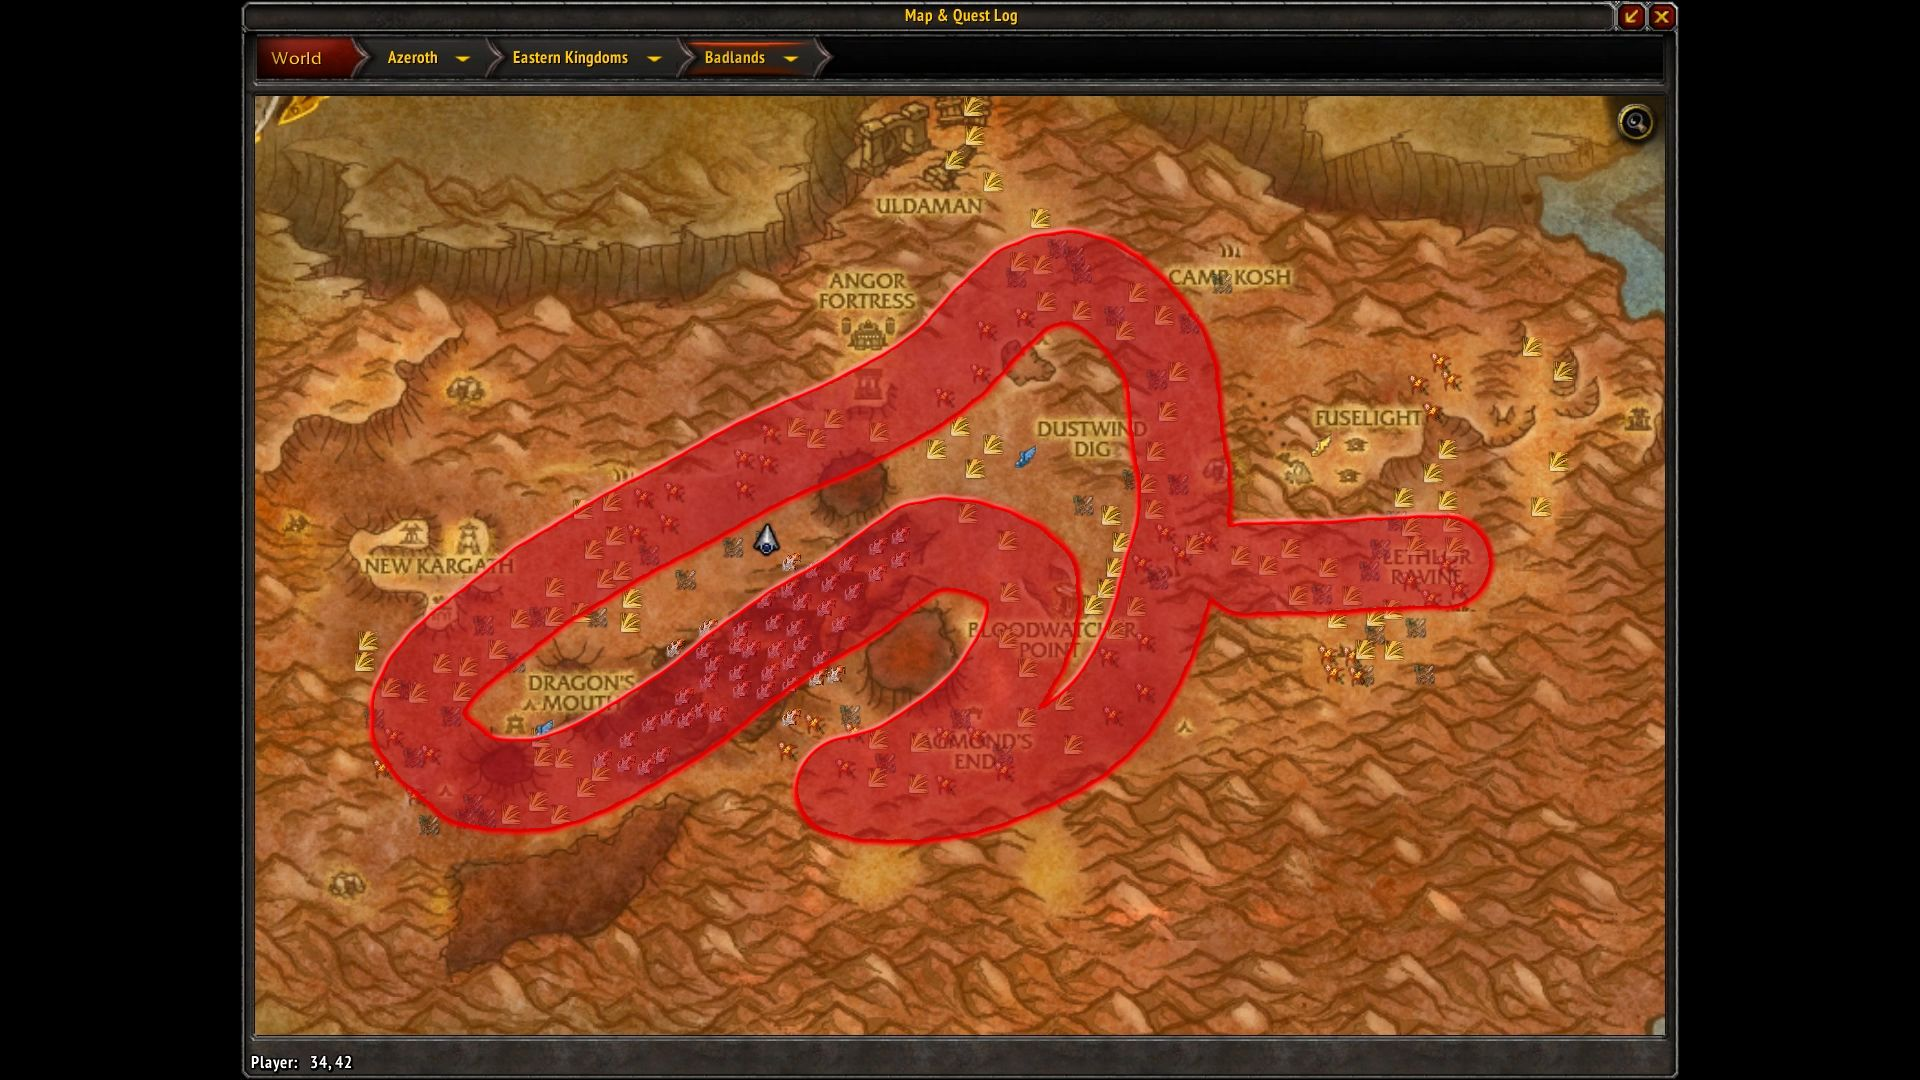 How To Farm Dragon S Teeth In Wow Full Guide Https Youtu Be